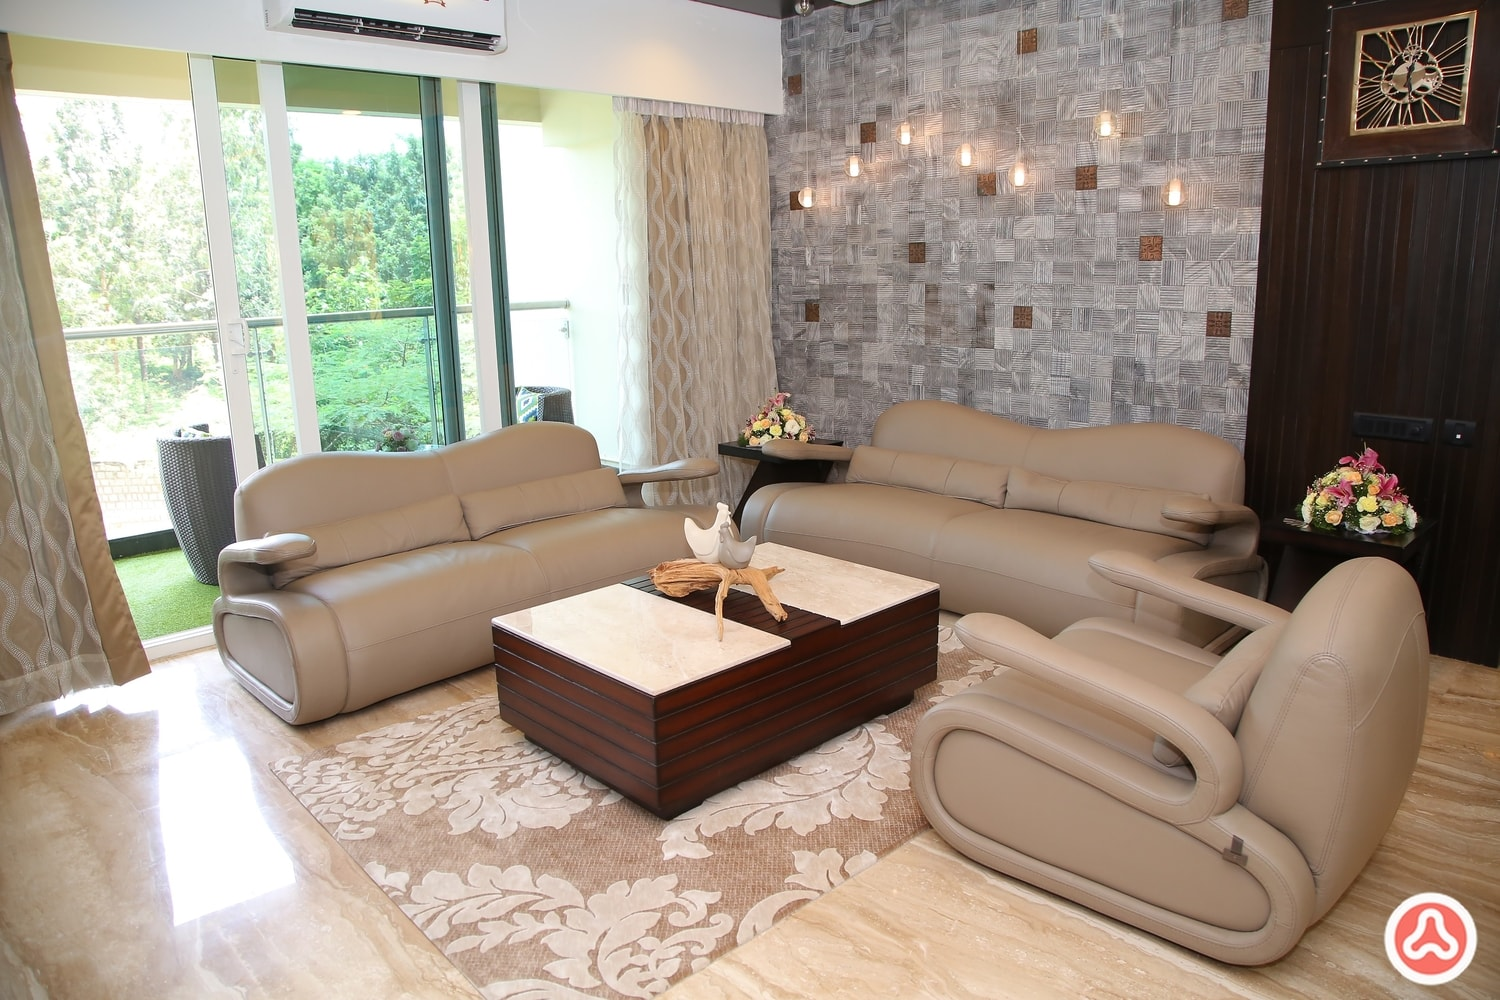 Living room with the stone cladding on the wall and sofa seating arranged around the wooding center table